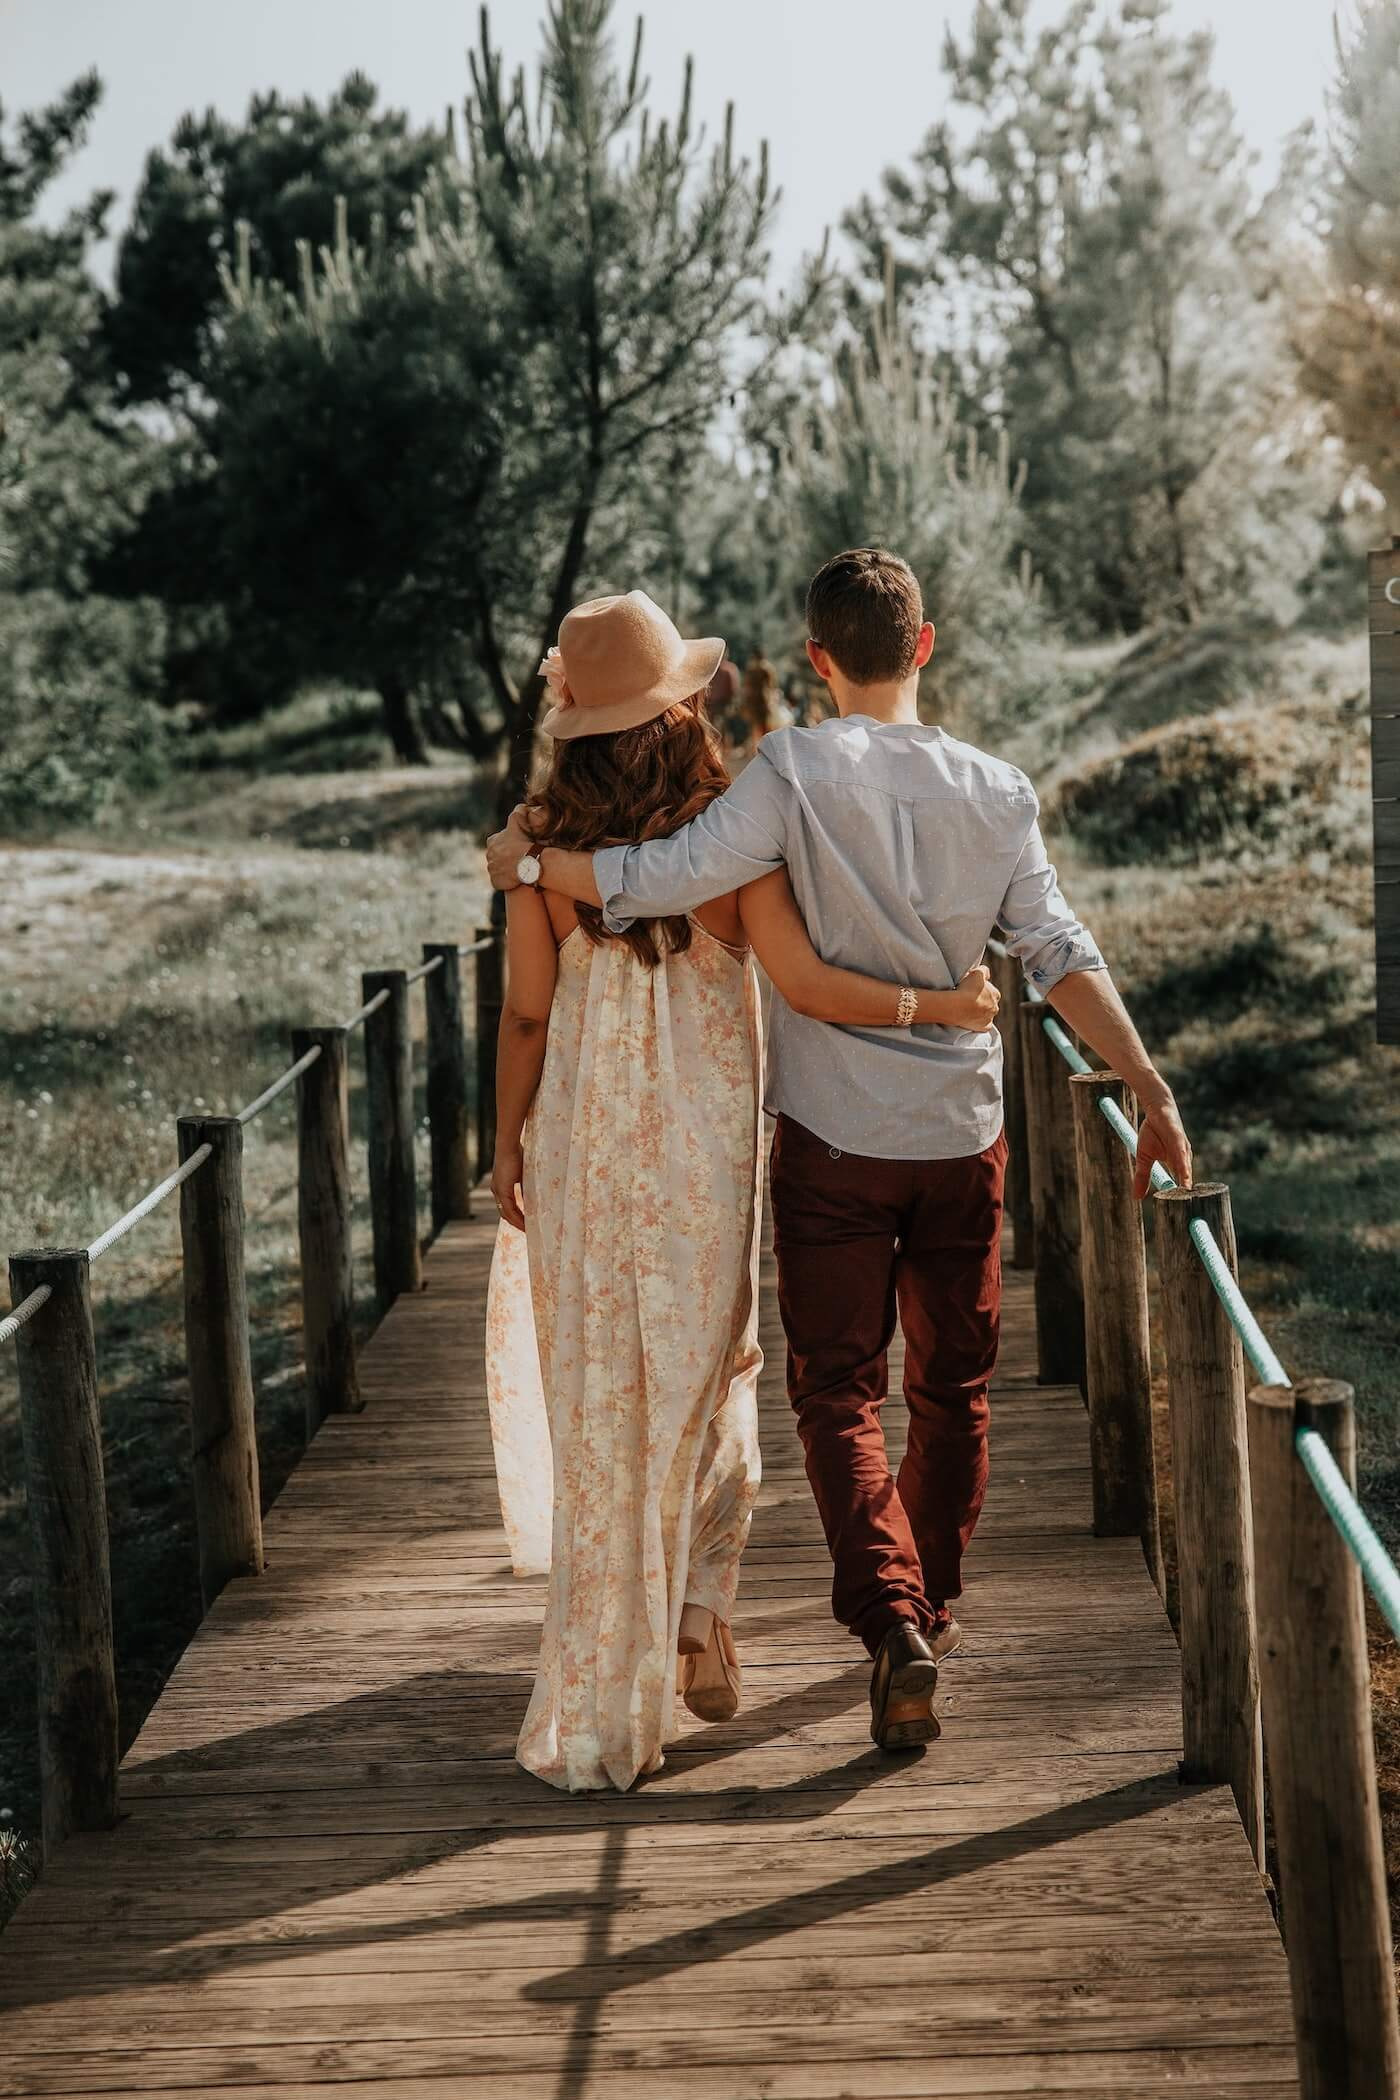 A couple walks down a bridge together for their wedding video